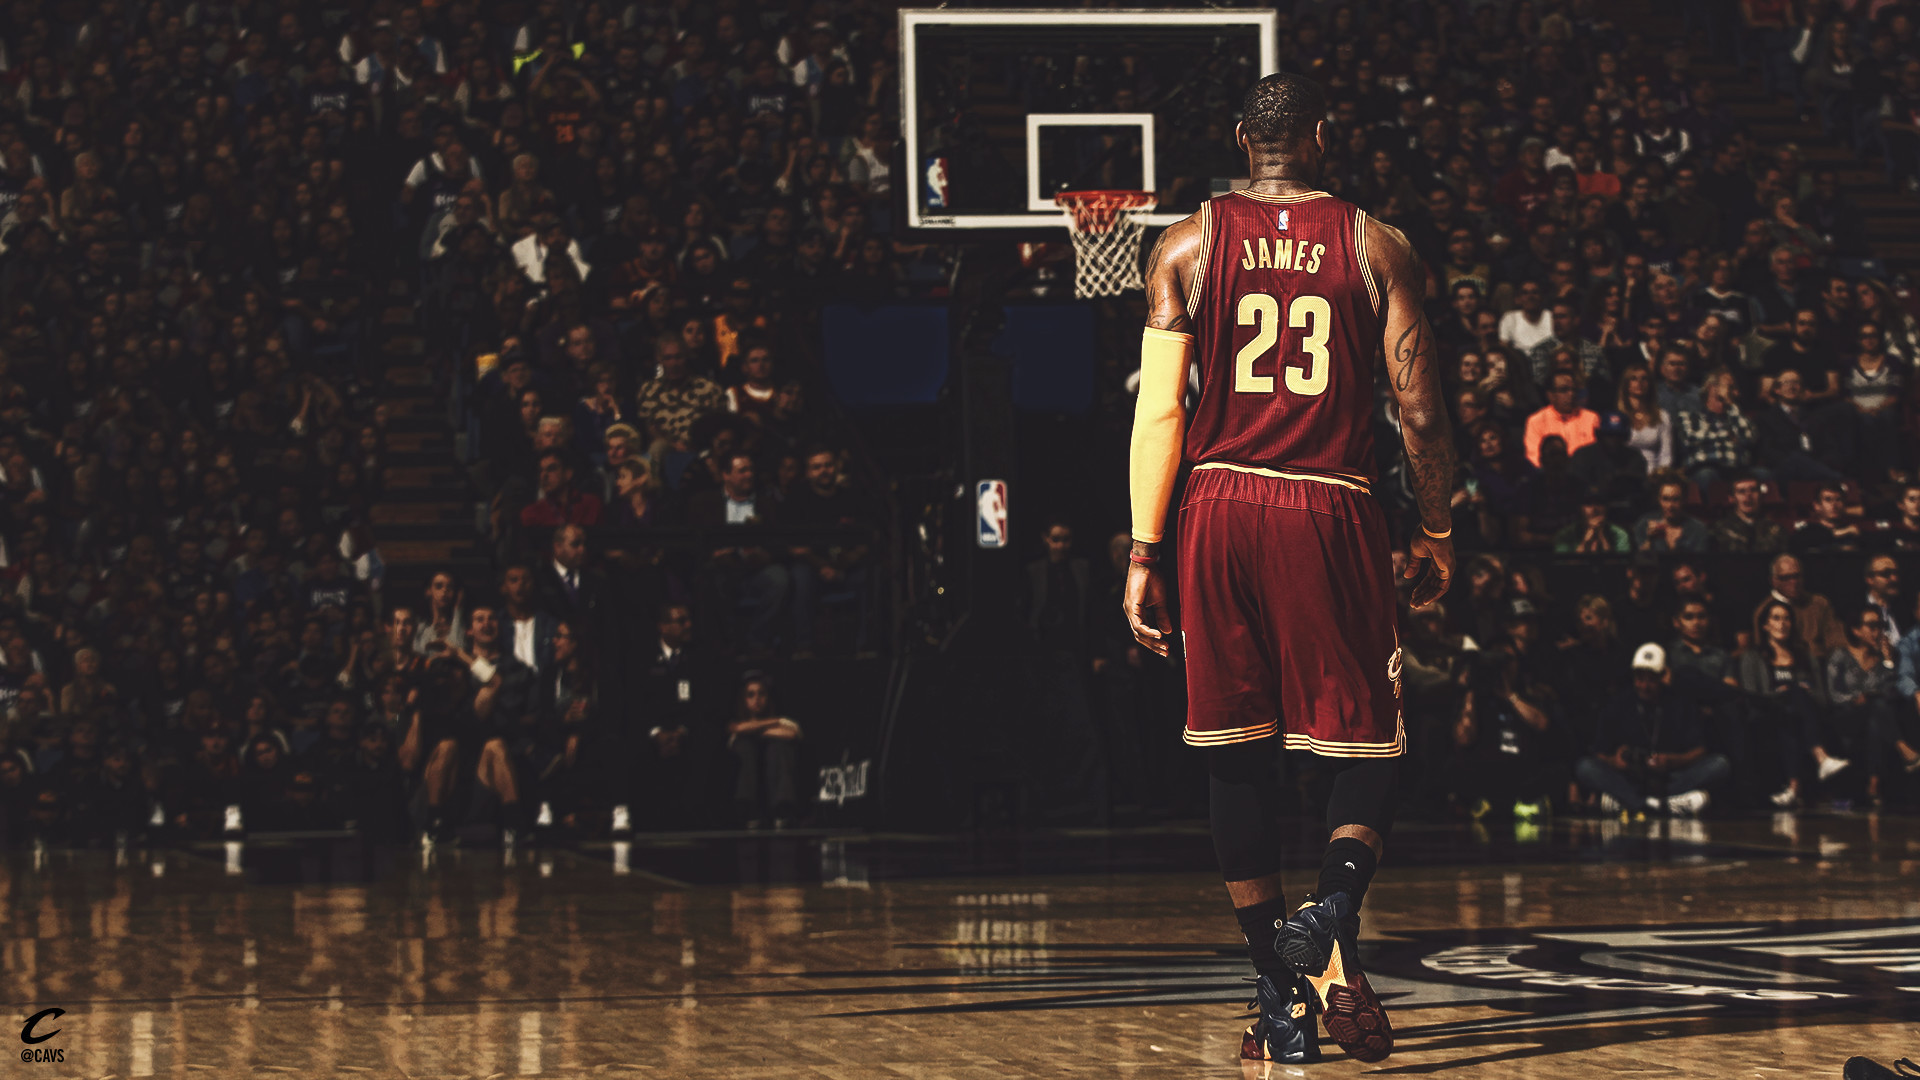 1920x1080 2880x1800 NBA LeBron James Miami Heat Dunk Wallpaper #218 | TanukinoSippo.